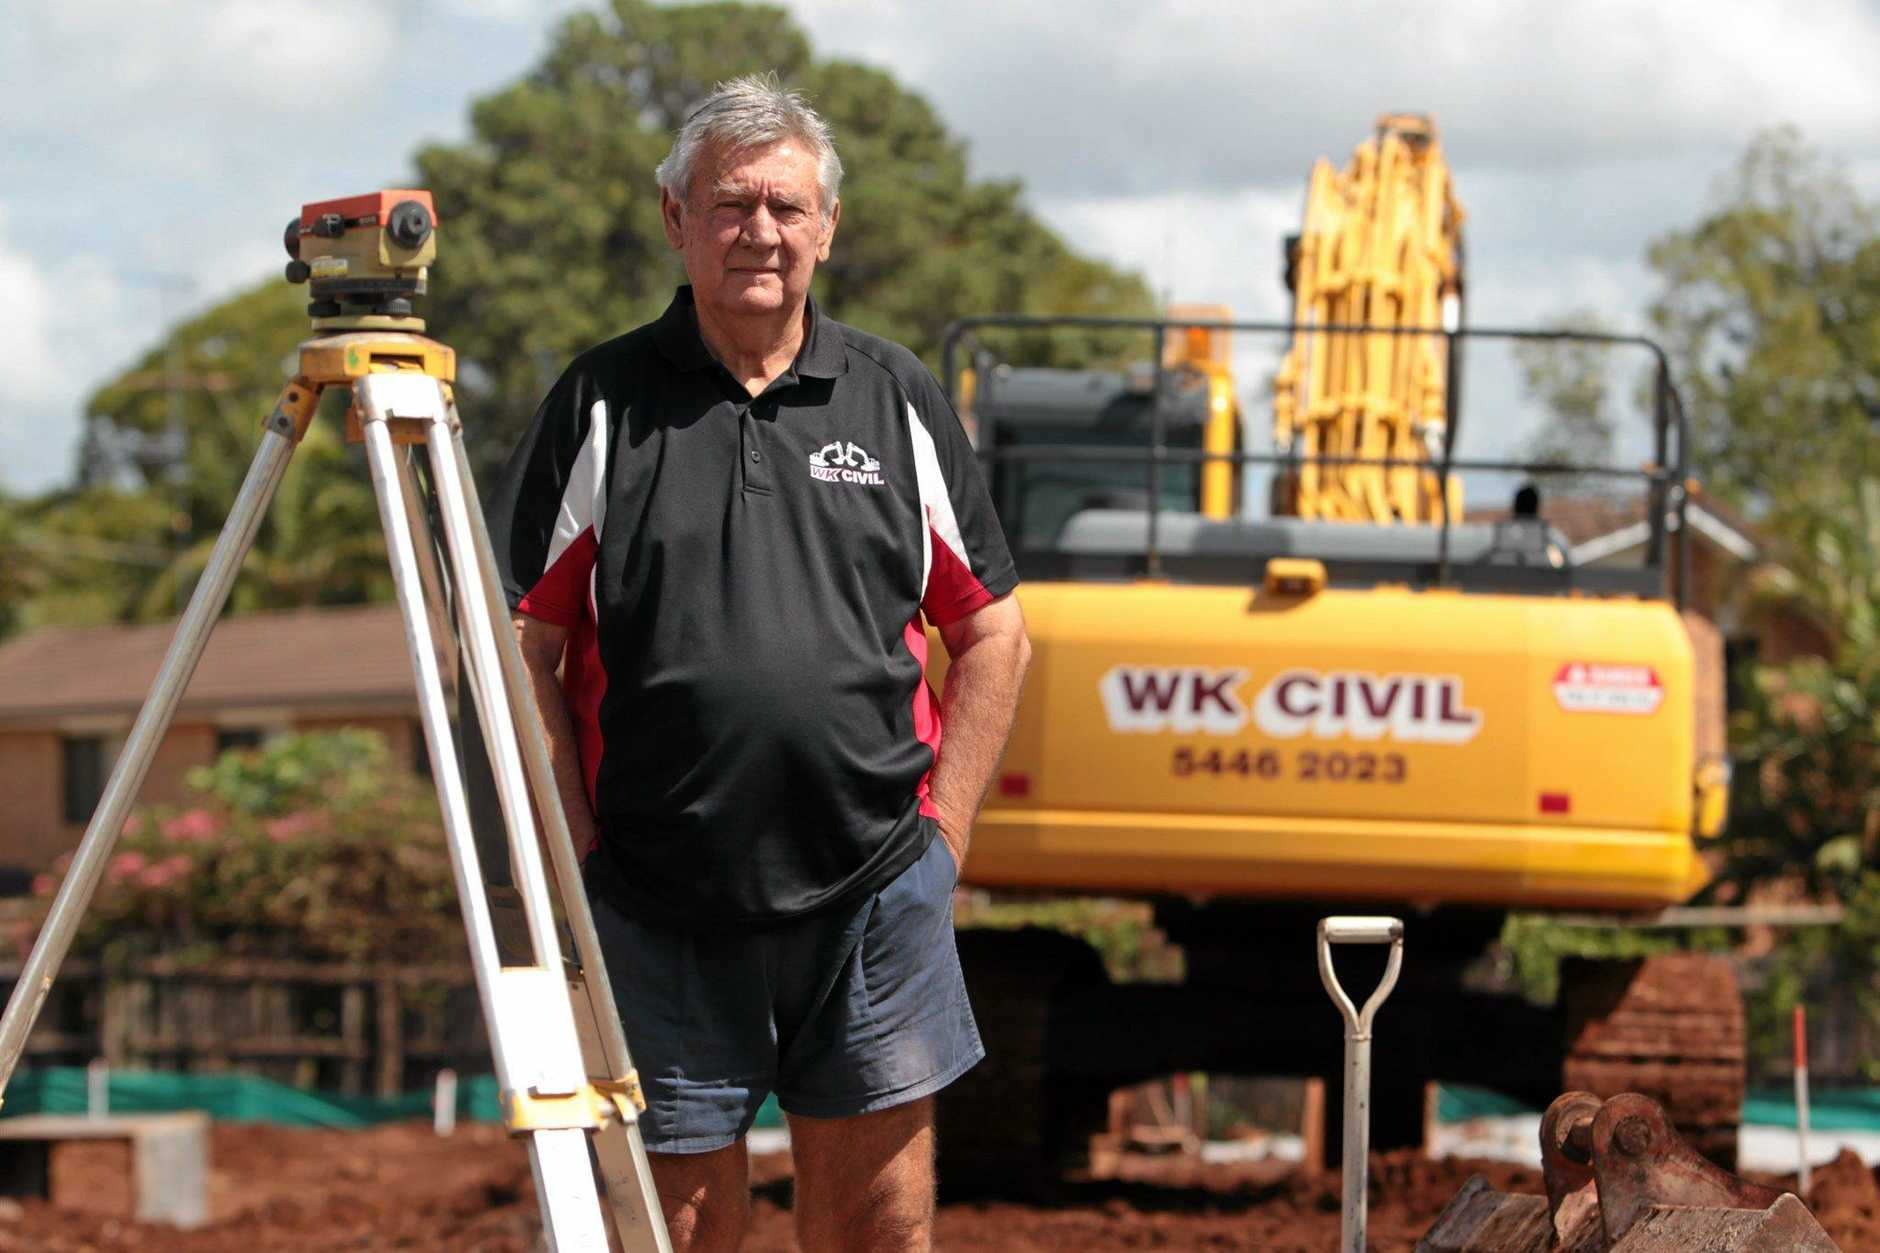 Les Williams from WK Civil is leading the fight to have sub-contractors paid for the work they did for collapsed builder Walton Constructions. Photo: Brett Wortman / Sunshine Coast Daily